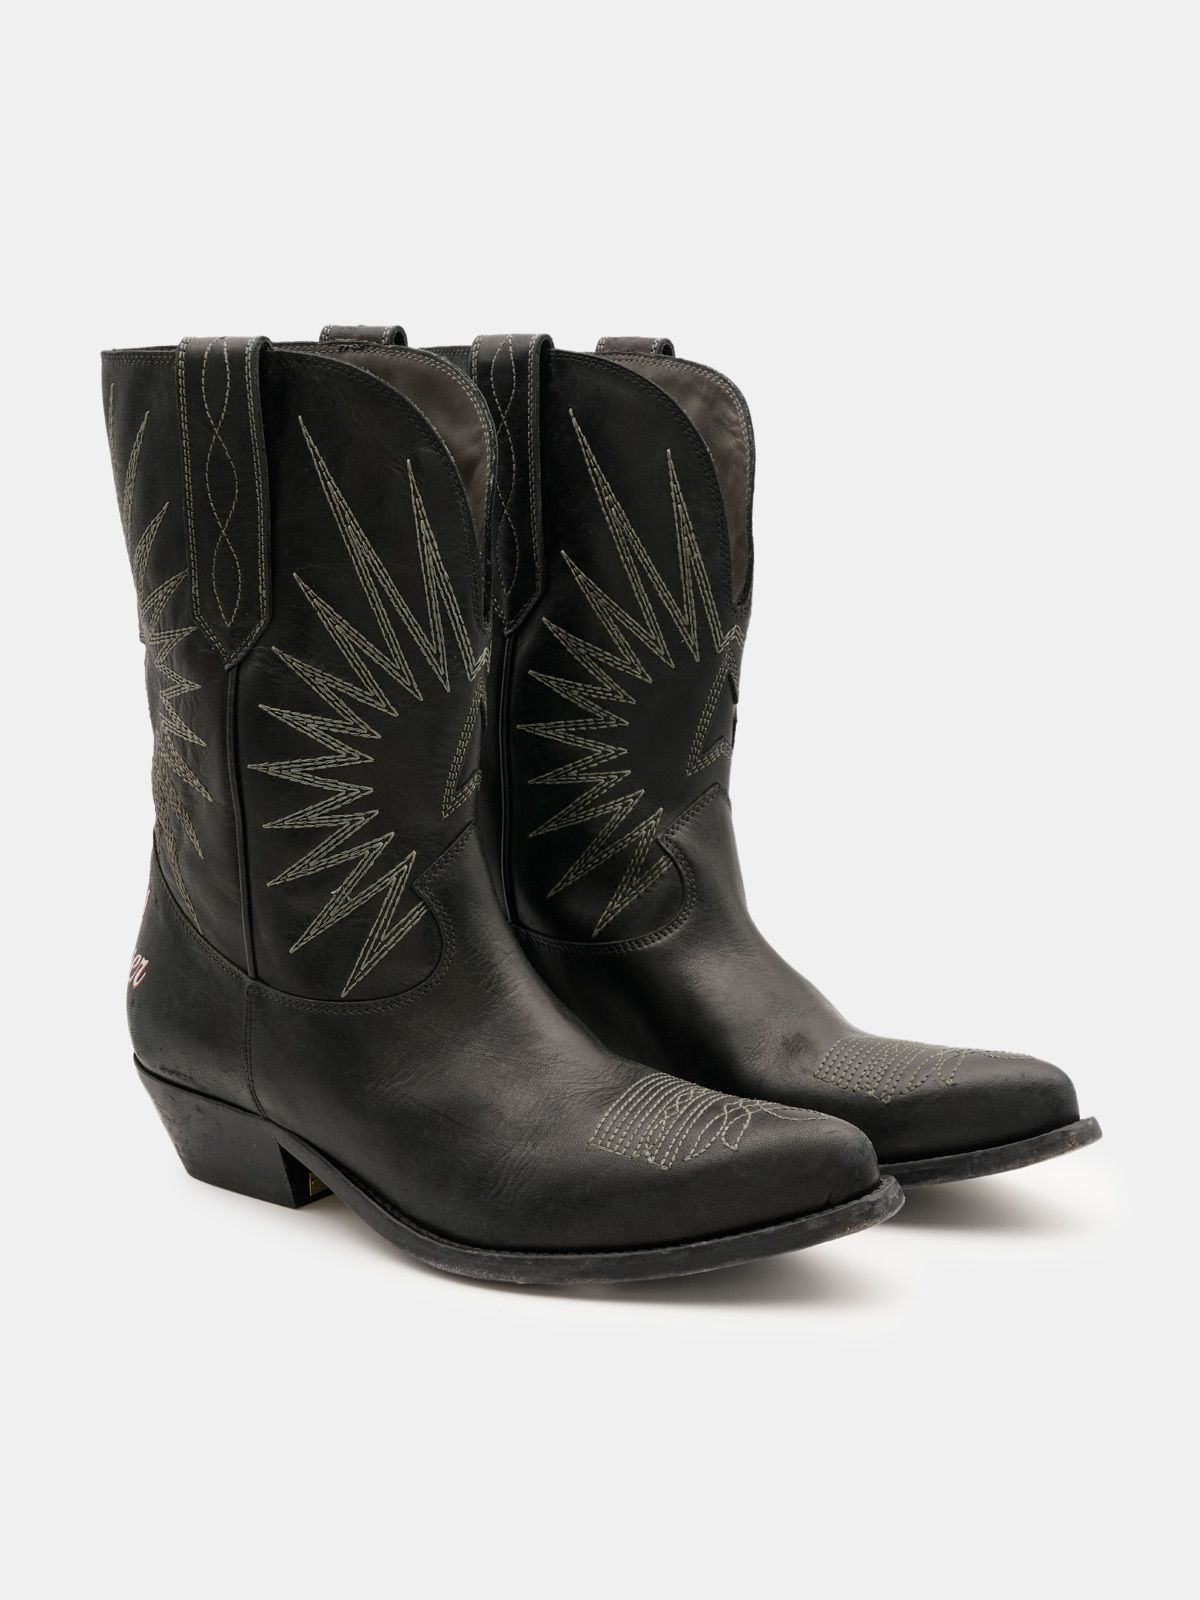 Golden Goose - Wish Star low black boots with lettering on the back in